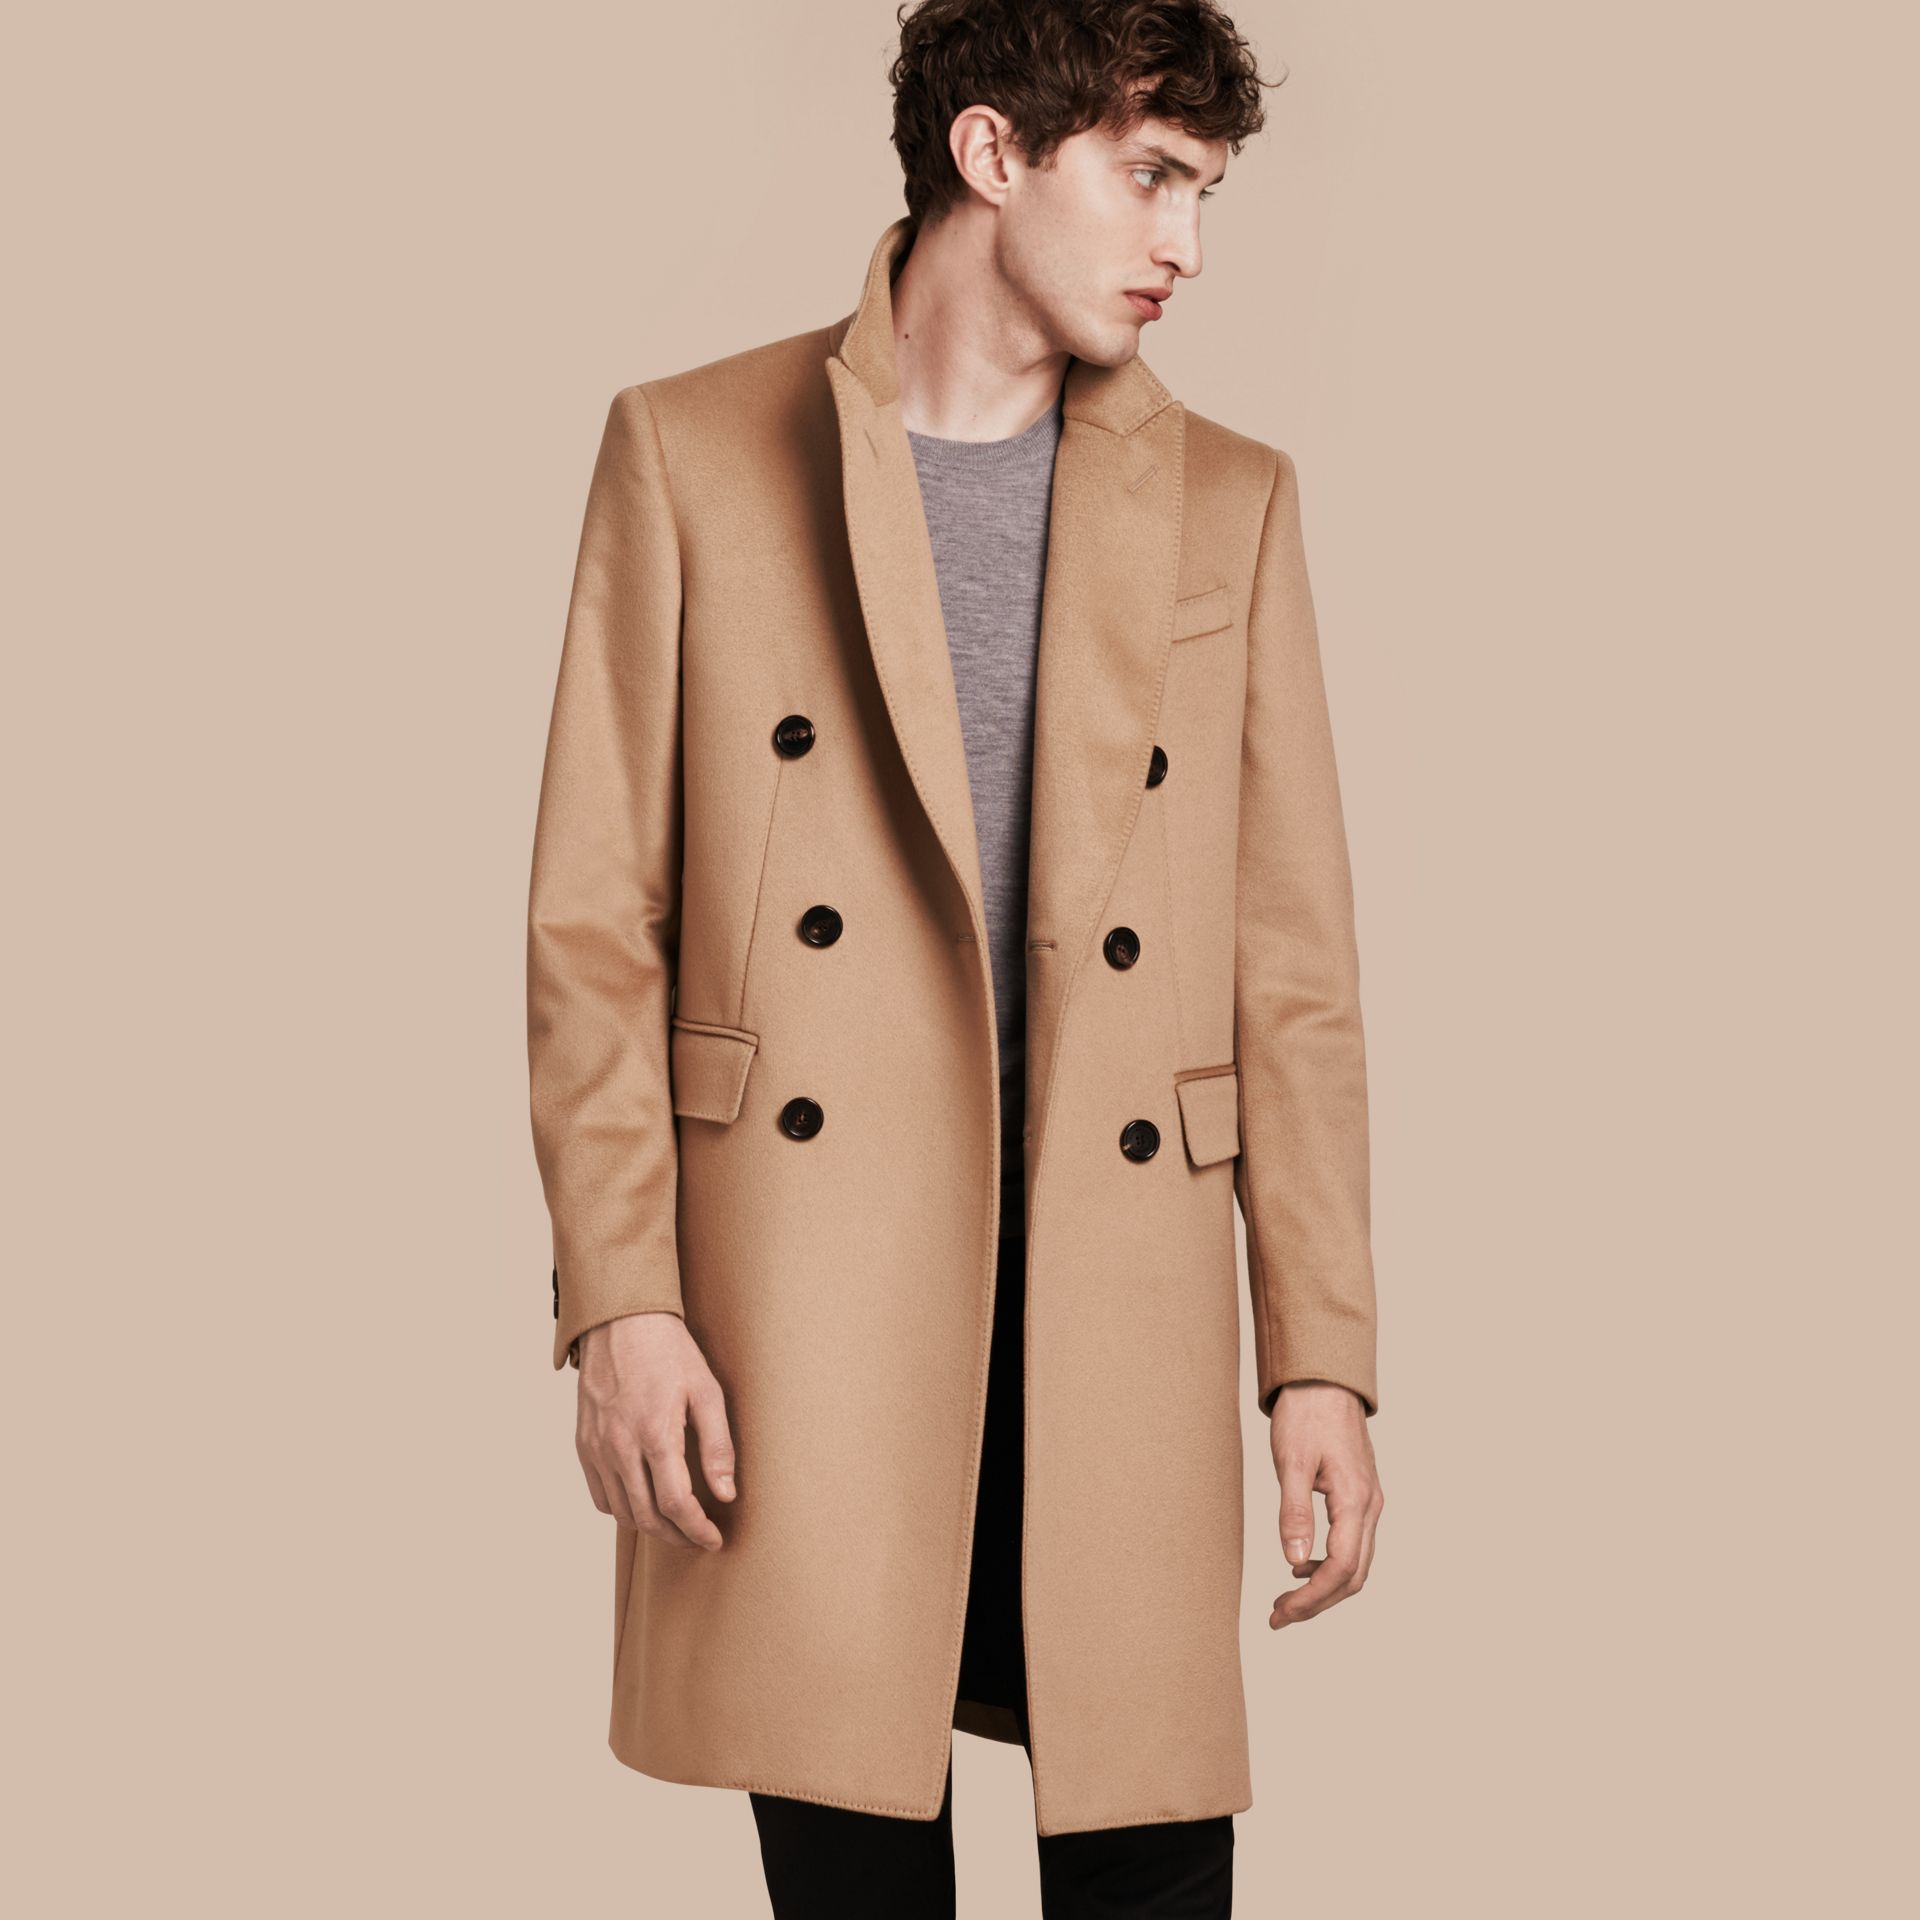 Camel Double-breasted Tailored Cashmere Coat - gallery image 1